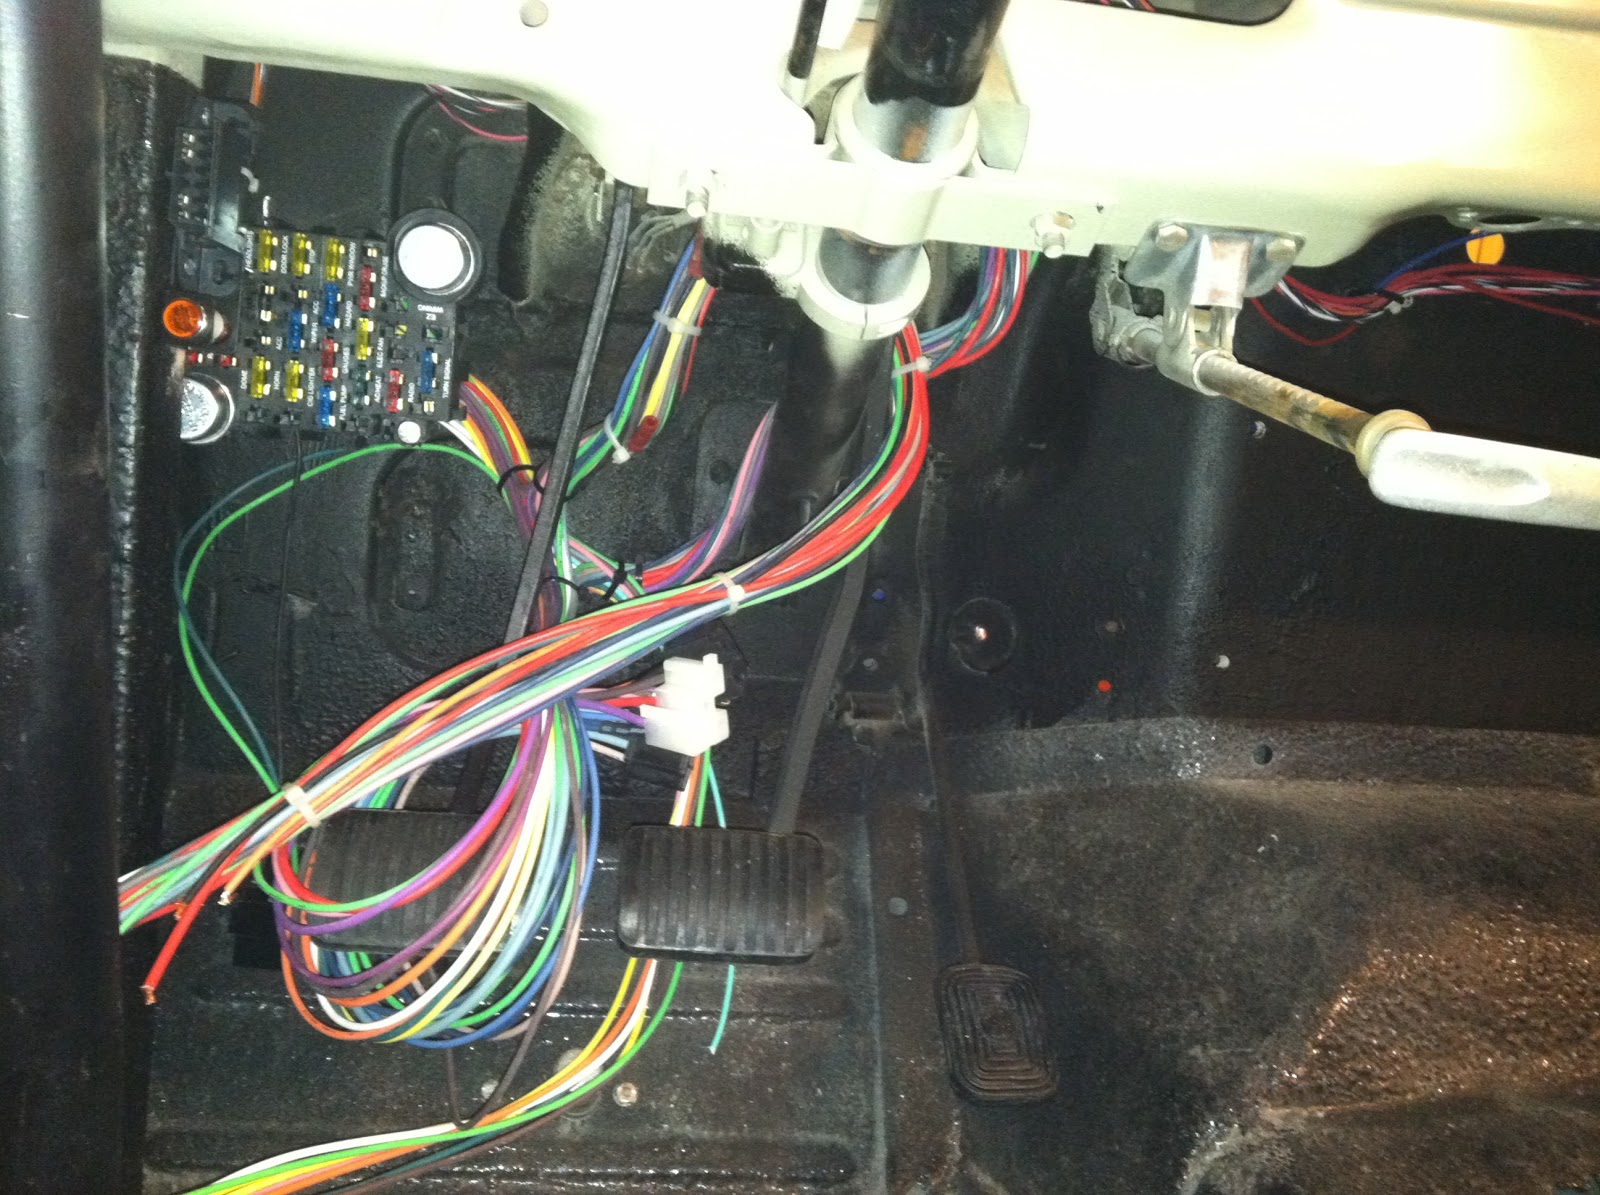 medium resolution of ez wiring harness cj5 wiring diagram go ez wiring harness cj5 ez wiring harness cj5 source ez wiring harness jeep